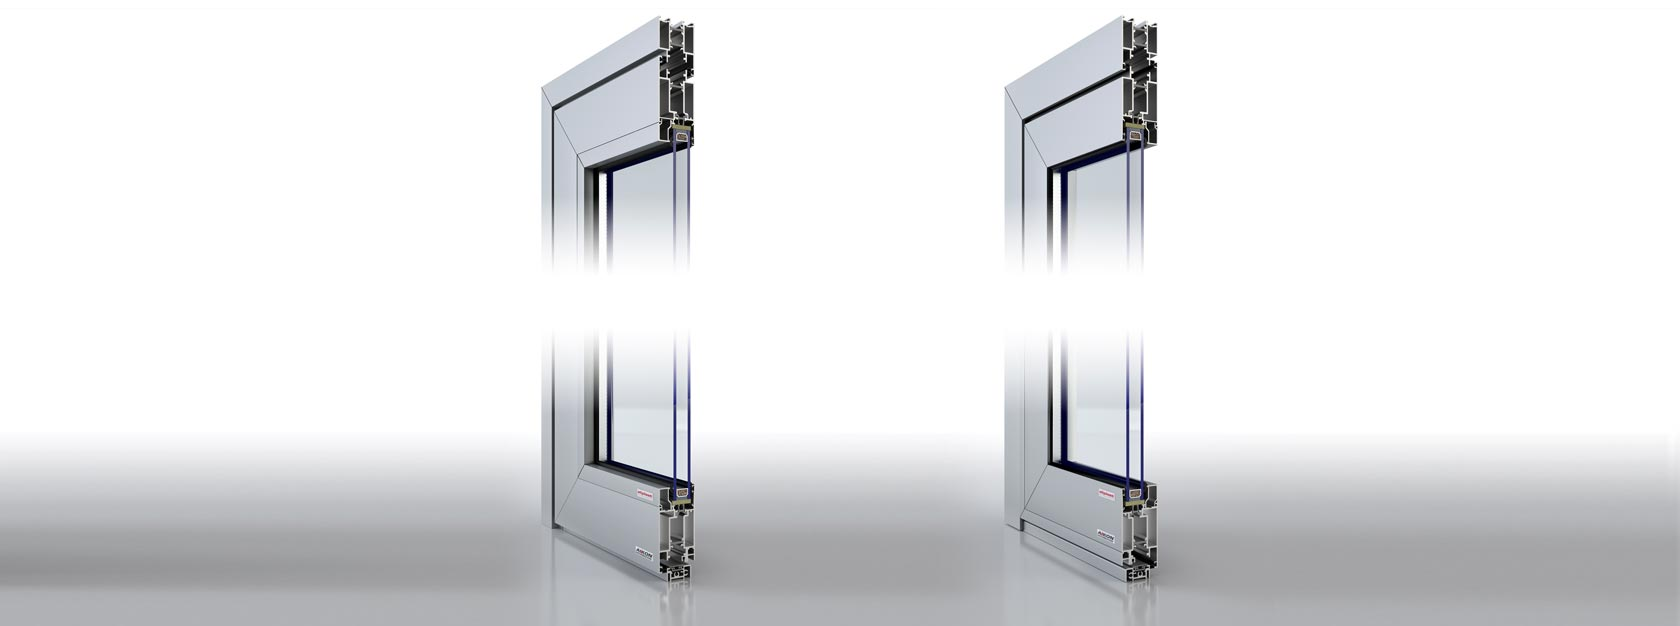 Aluminum door with single or double glass panes